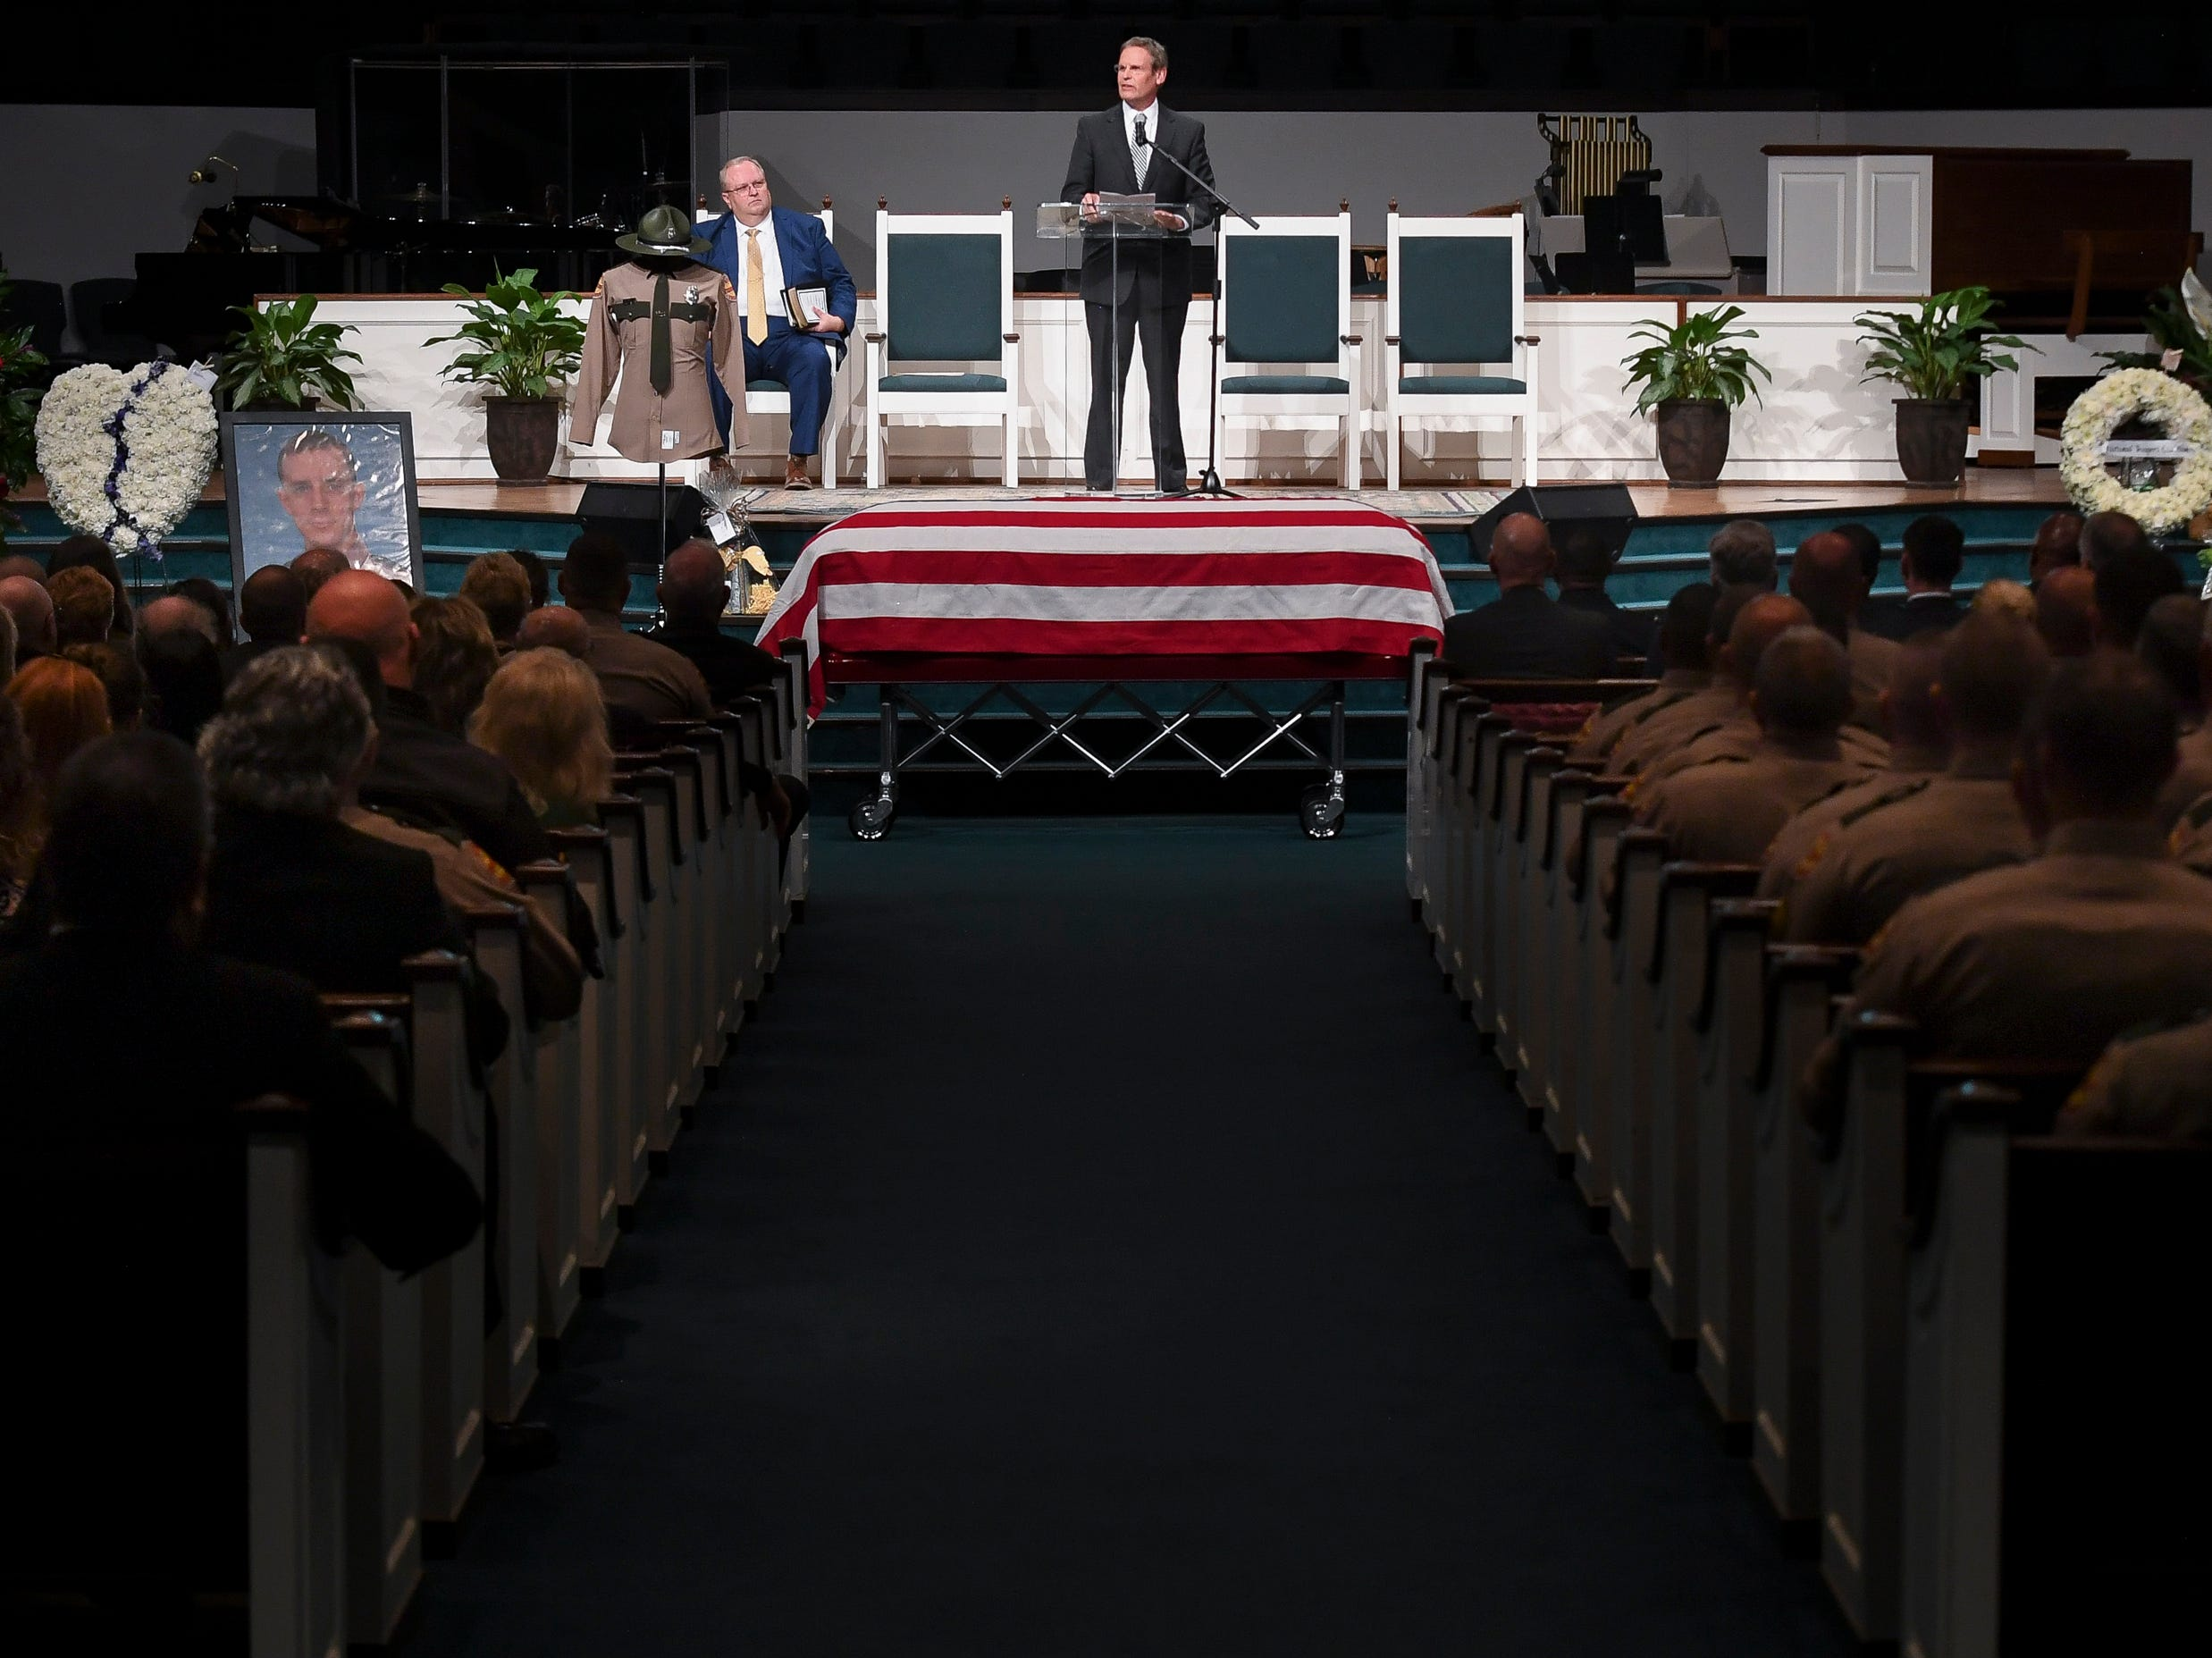 Tennessee Governor Bill Lee speaks during the funeral service for Tennessee State Trooper Matthew Gatti at West Jackson Baptist Church in Jackson, Tenn., Monday, May 13, 2019. Gatti died in the line of duty in an accident while responding to a car fire on I-40 in Madison County on May 6.